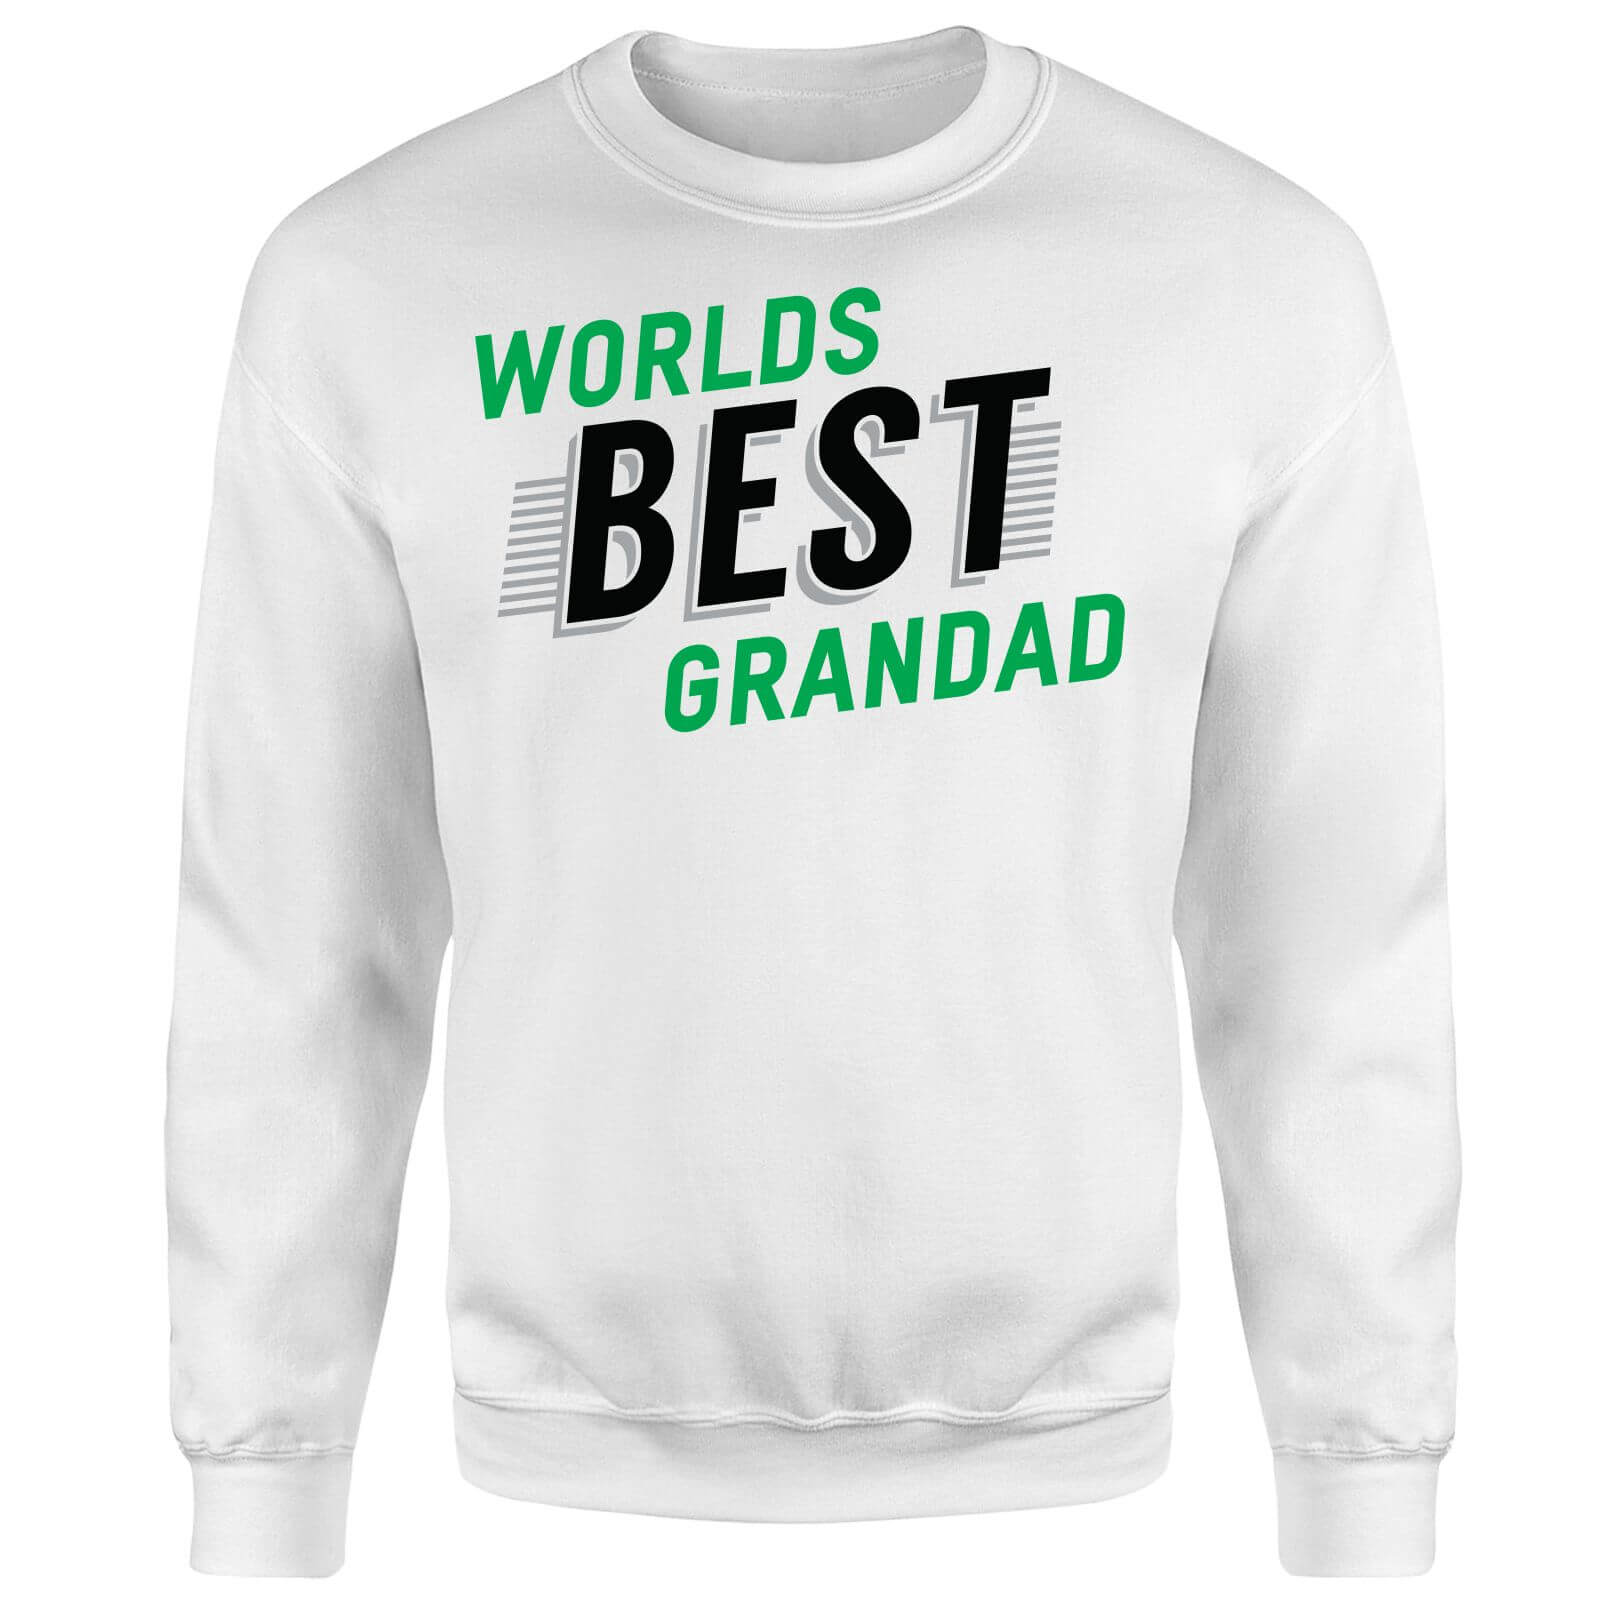 Worlds Best Grandad Sweatshirt - White